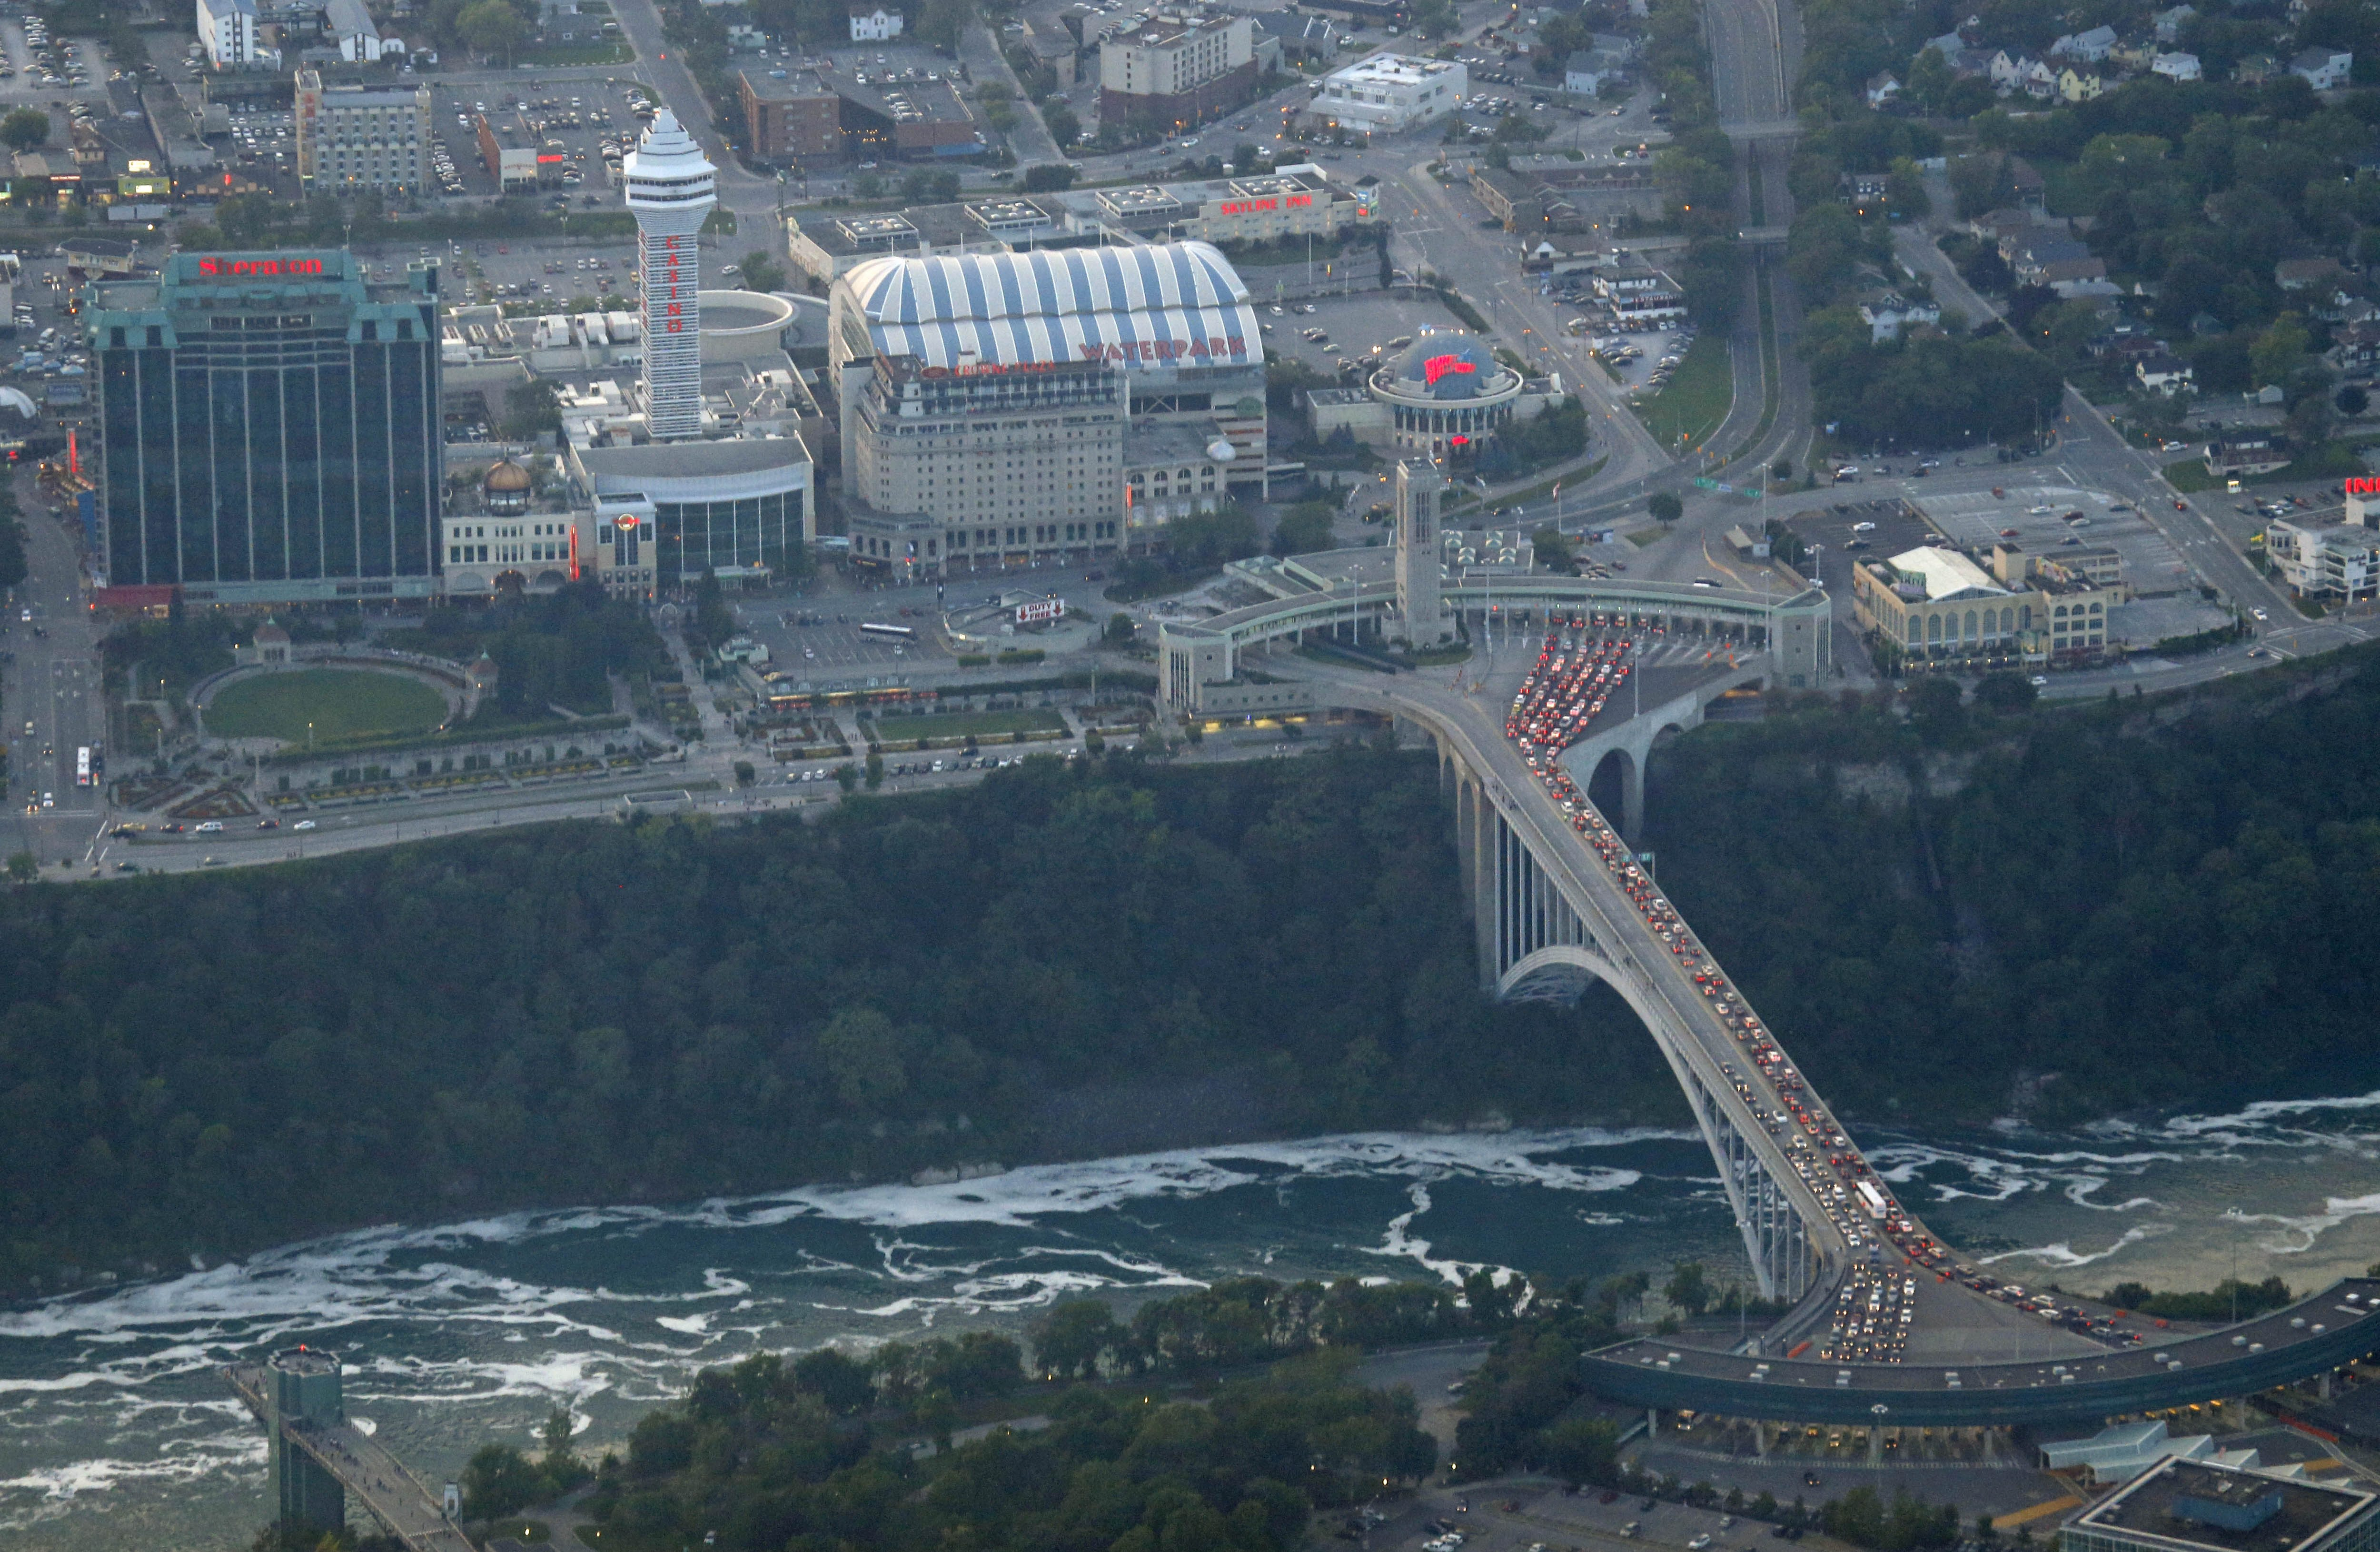 Elderly man spotted going over Canadian side of Niagara Falls